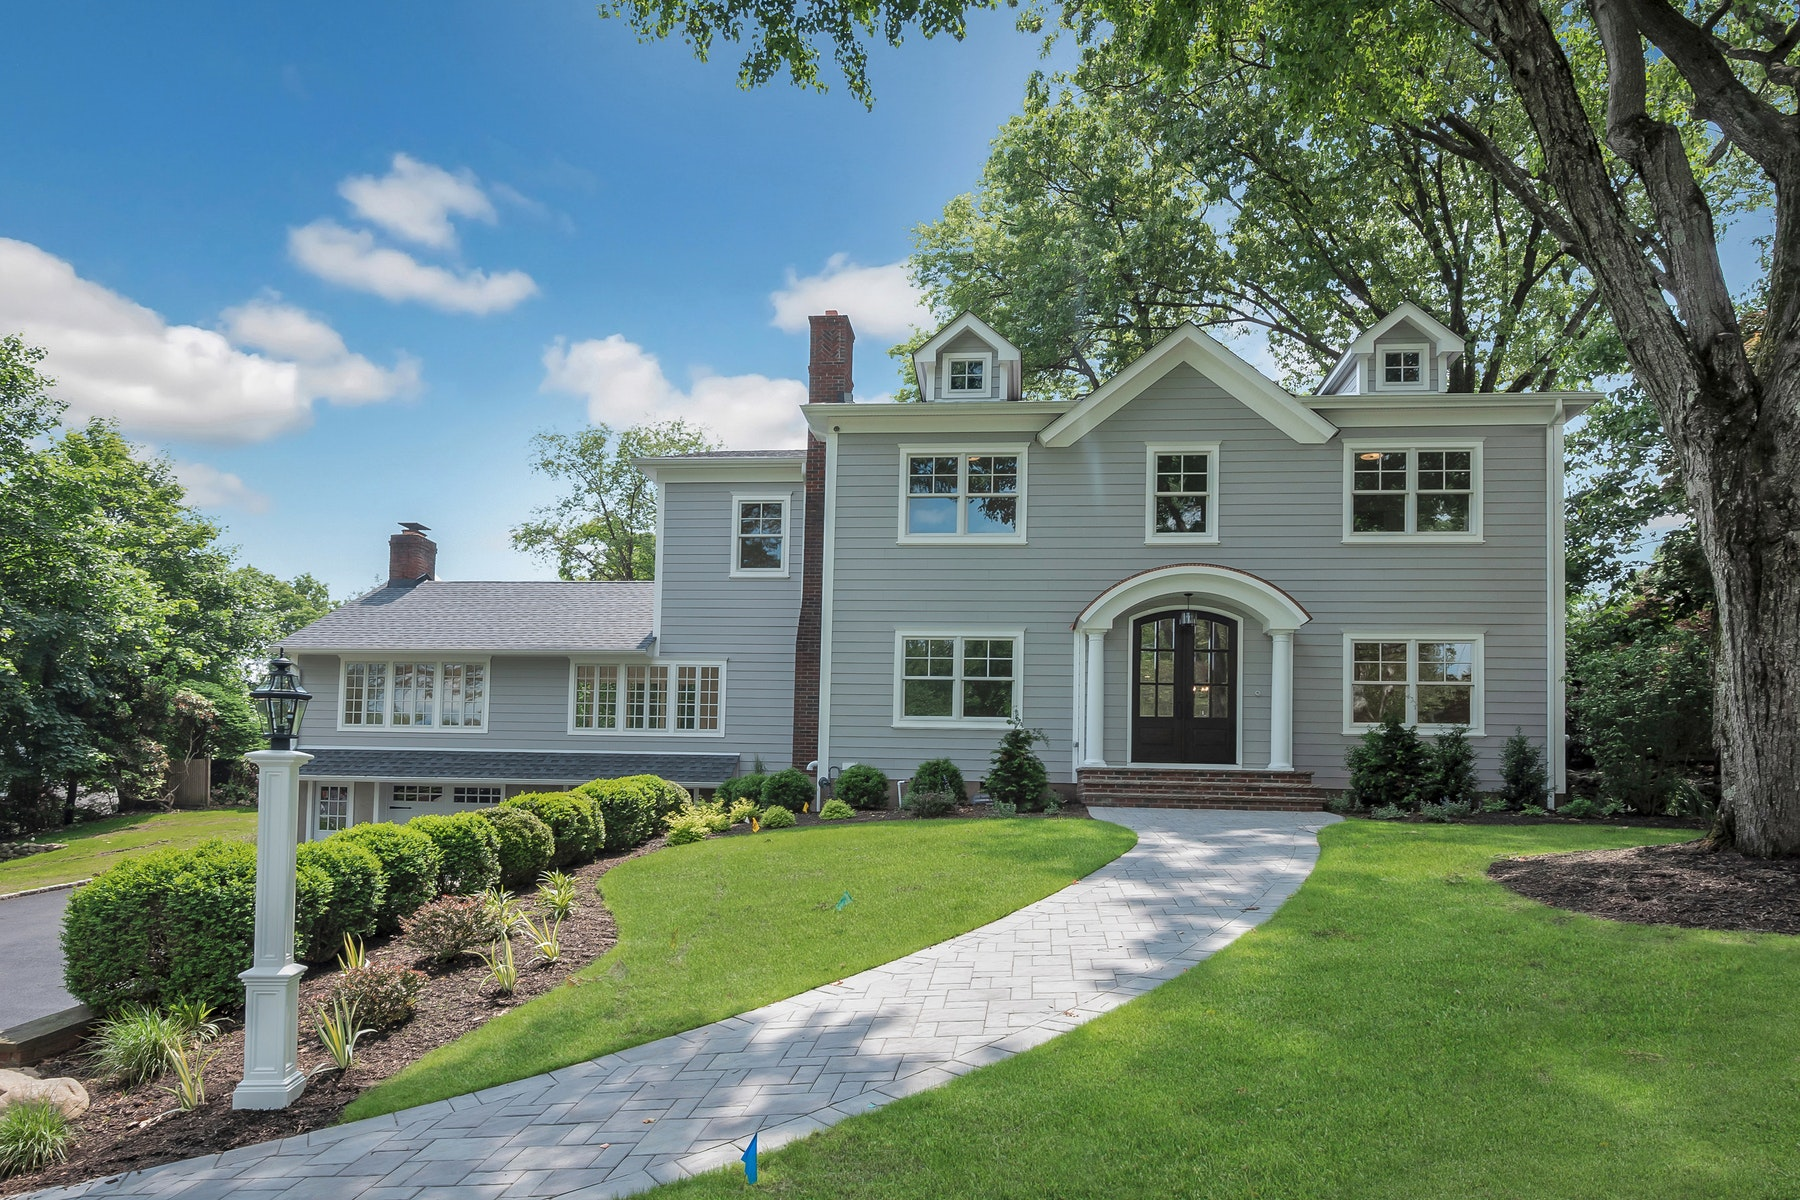 Single Family Homes pour l Vente à Custom Built Luxury Home 379 Van Beekum Place, Wyckoff, New Jersey 07481 États-Unis